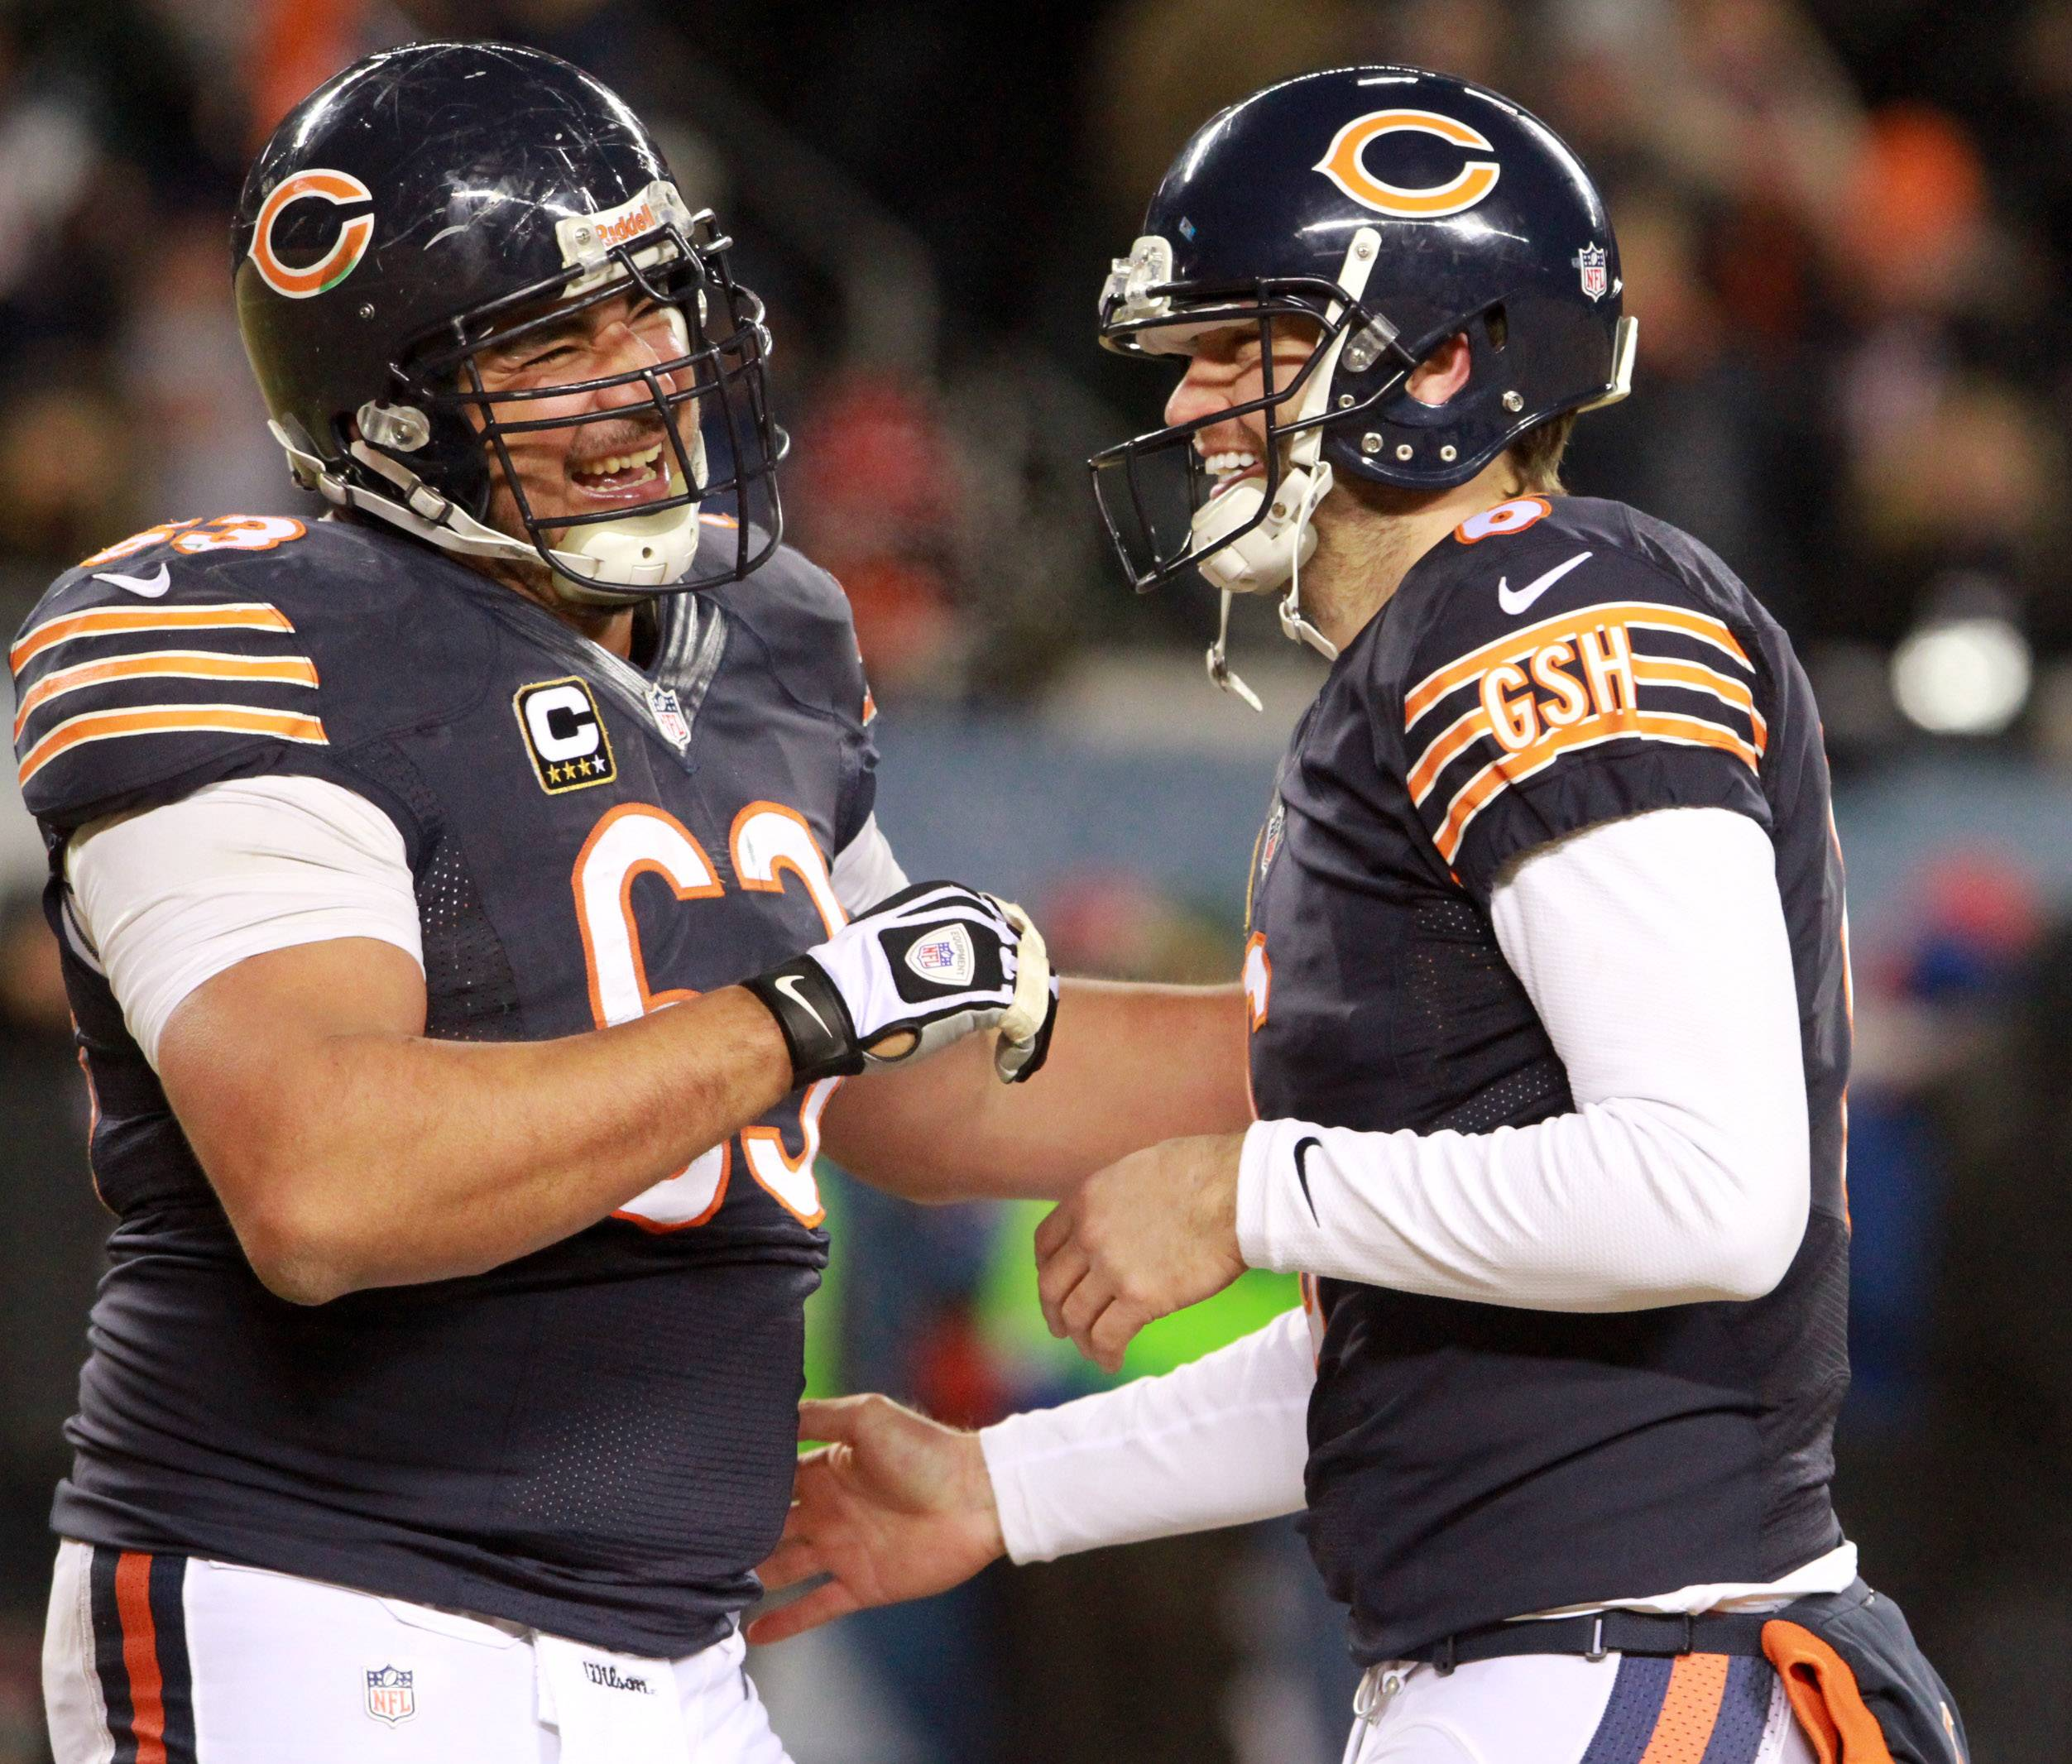 After 14 NFL seasons, Bears Roberto Garza, left, is coming back for one more. Garza signed a one-year deal with the Bears for the 2015 season.